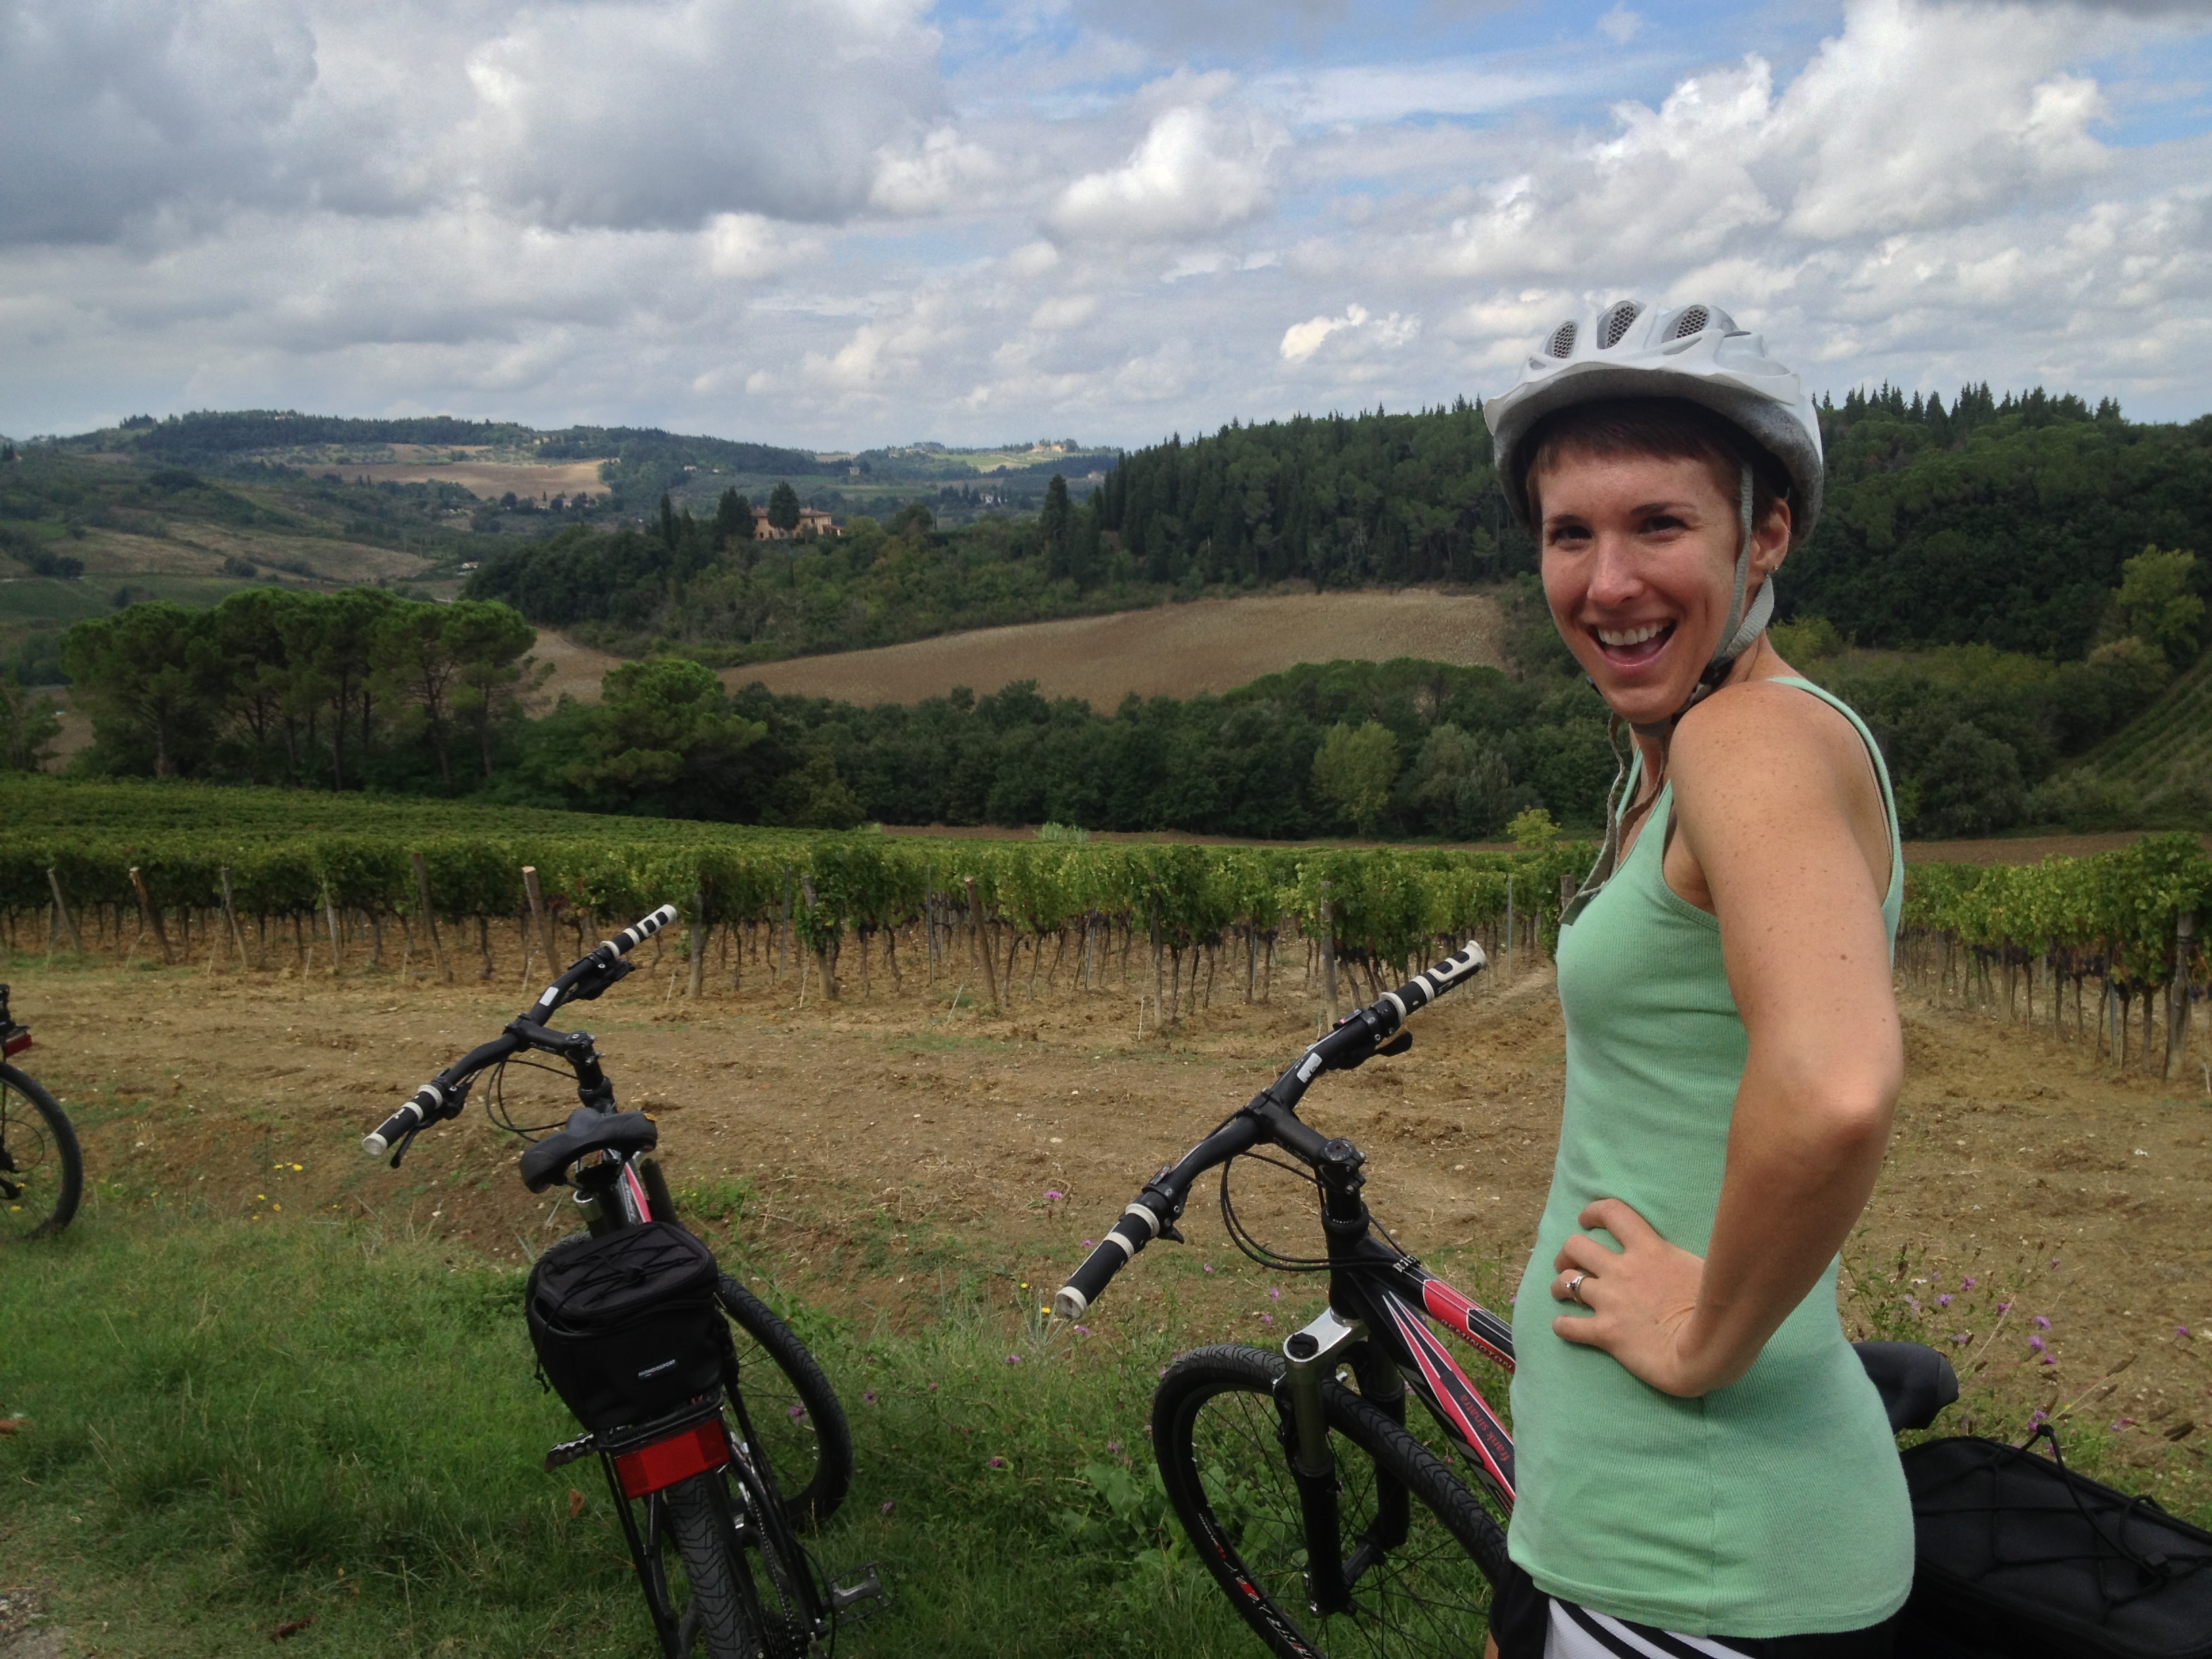 Here's me, bein' cheesy in Tuscany!